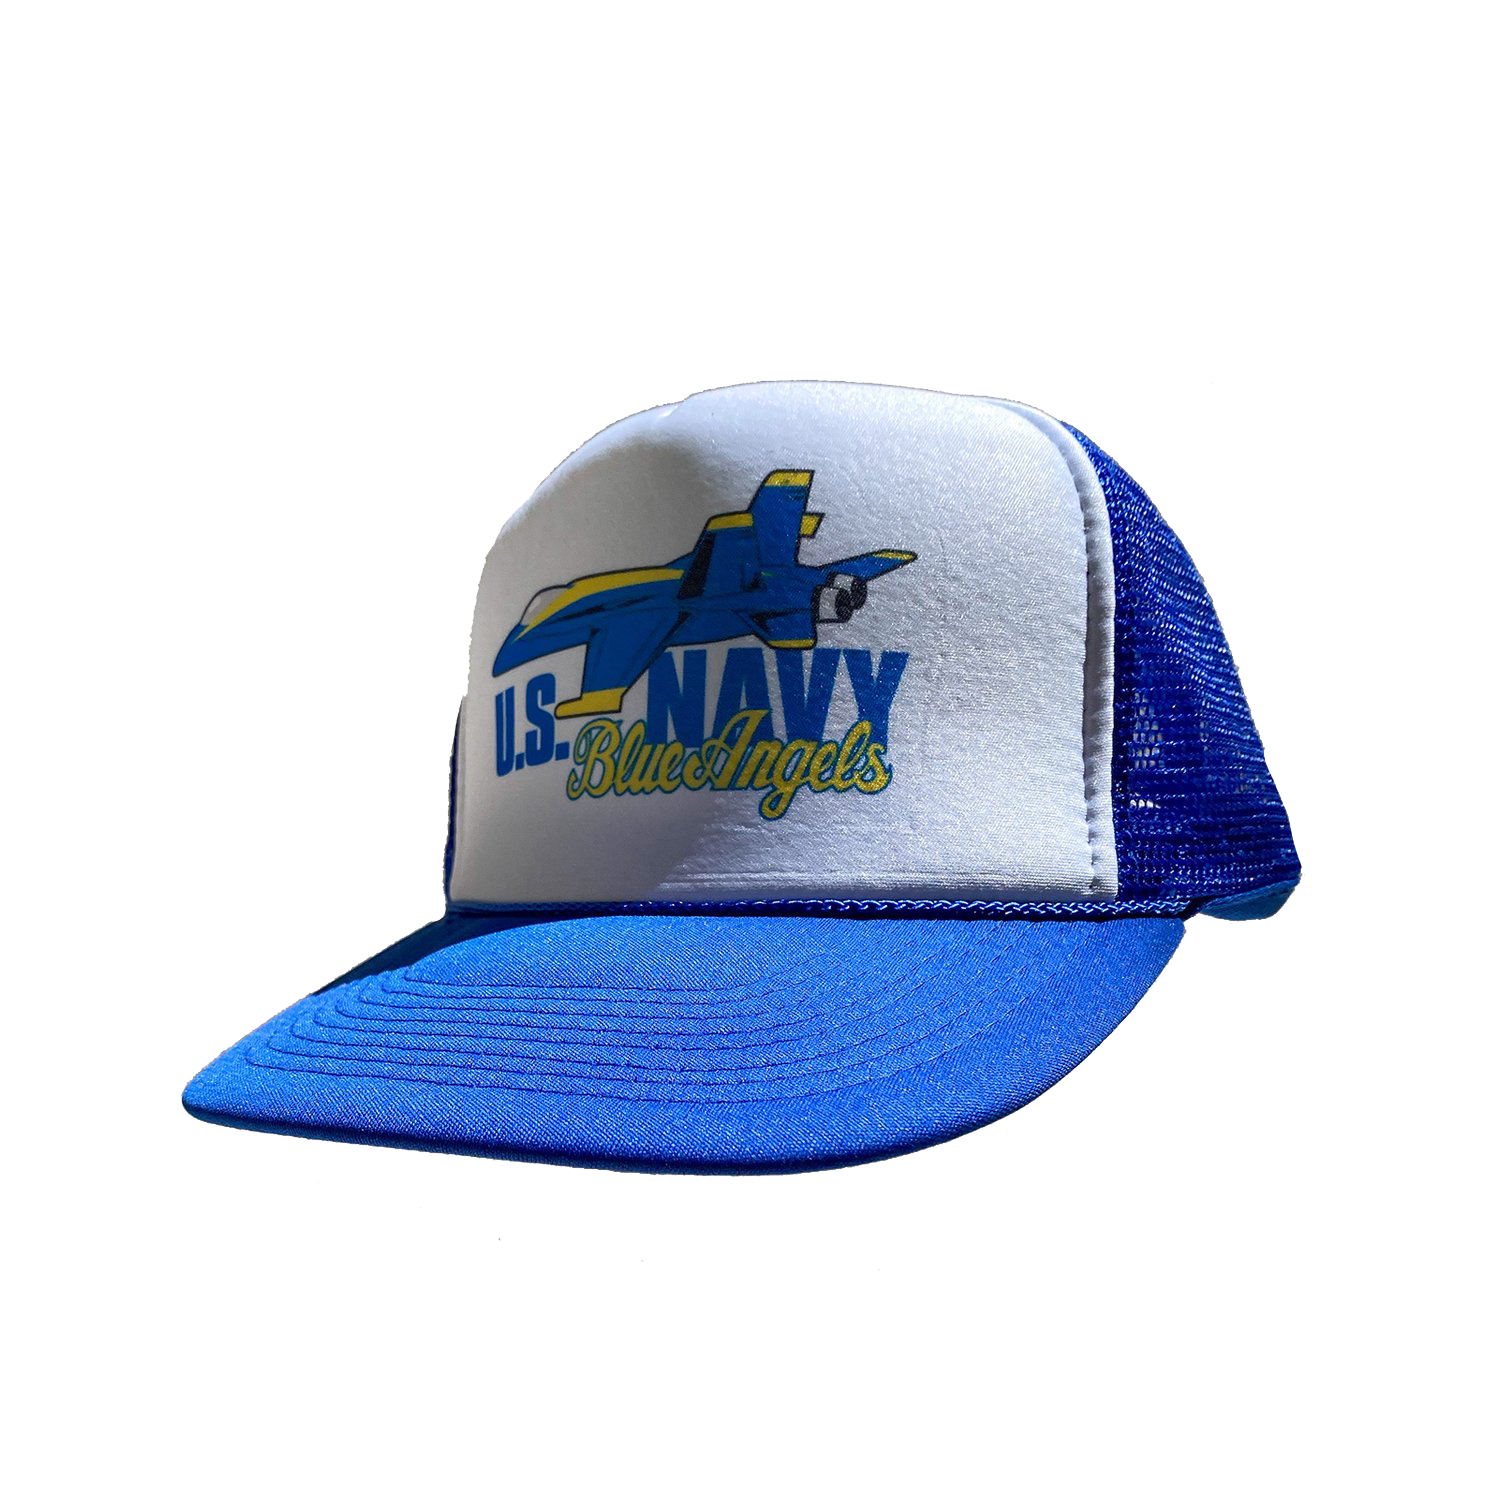 Vintage U.S. Navy Blue Angels Hat